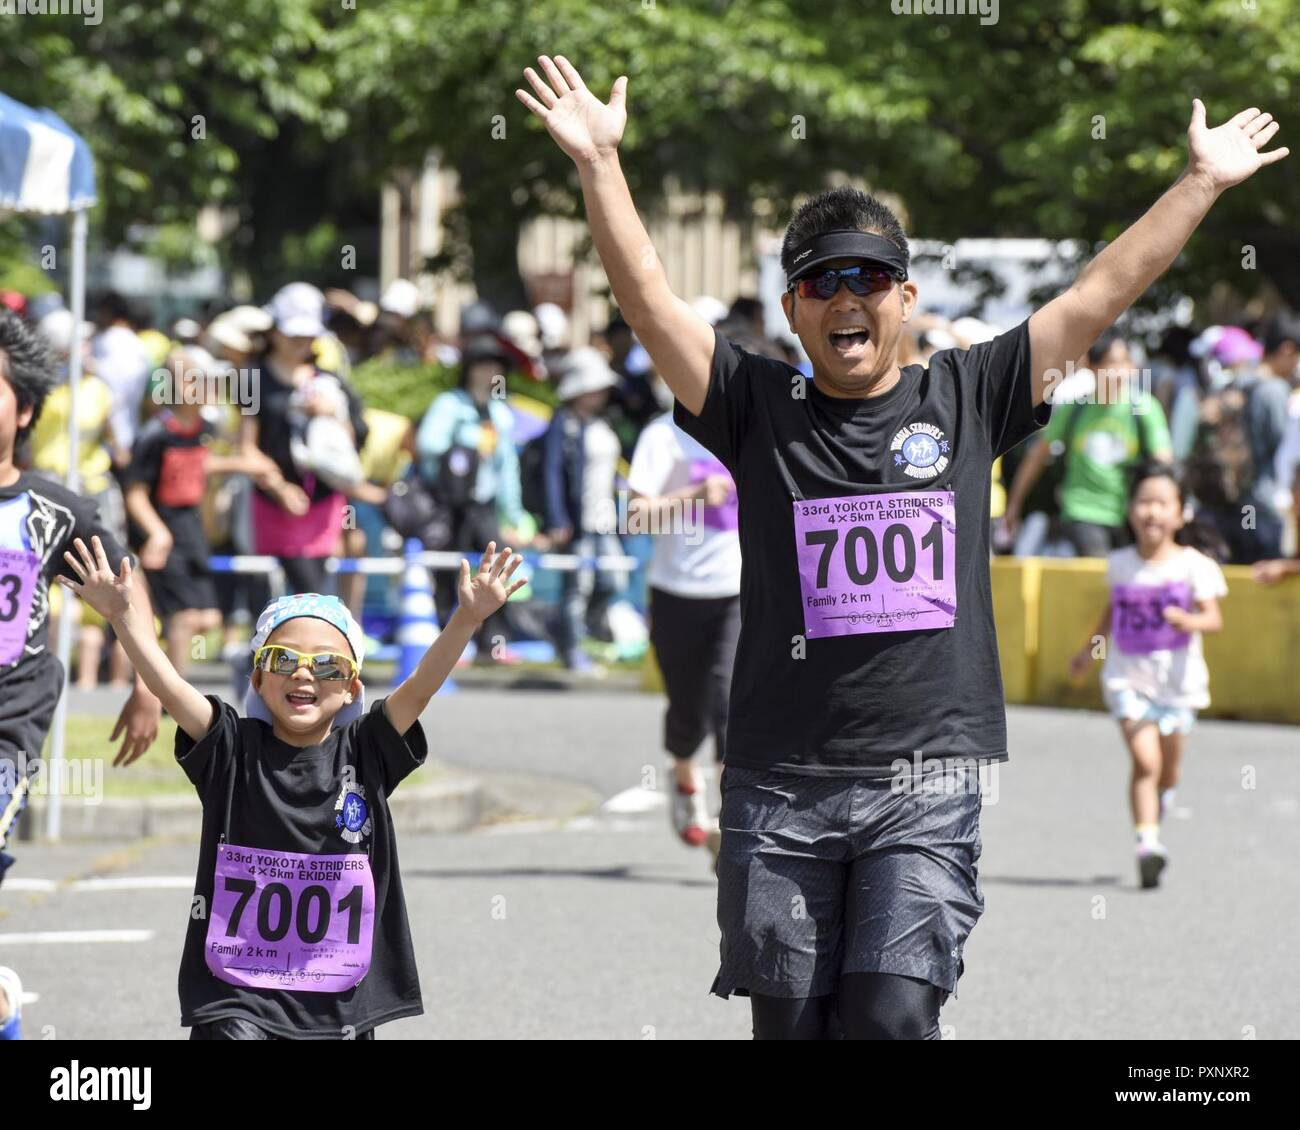 A father and daughter cross the finish line together with their hands up at the 2K Family Run during the 33rd Annual Yokota Striders Ekiden at Yokota Air Base, Japan, June 4, 2017. More than 5,000 runners participated in the event hosted by the Yokota Striders Running Club. - Stock Image